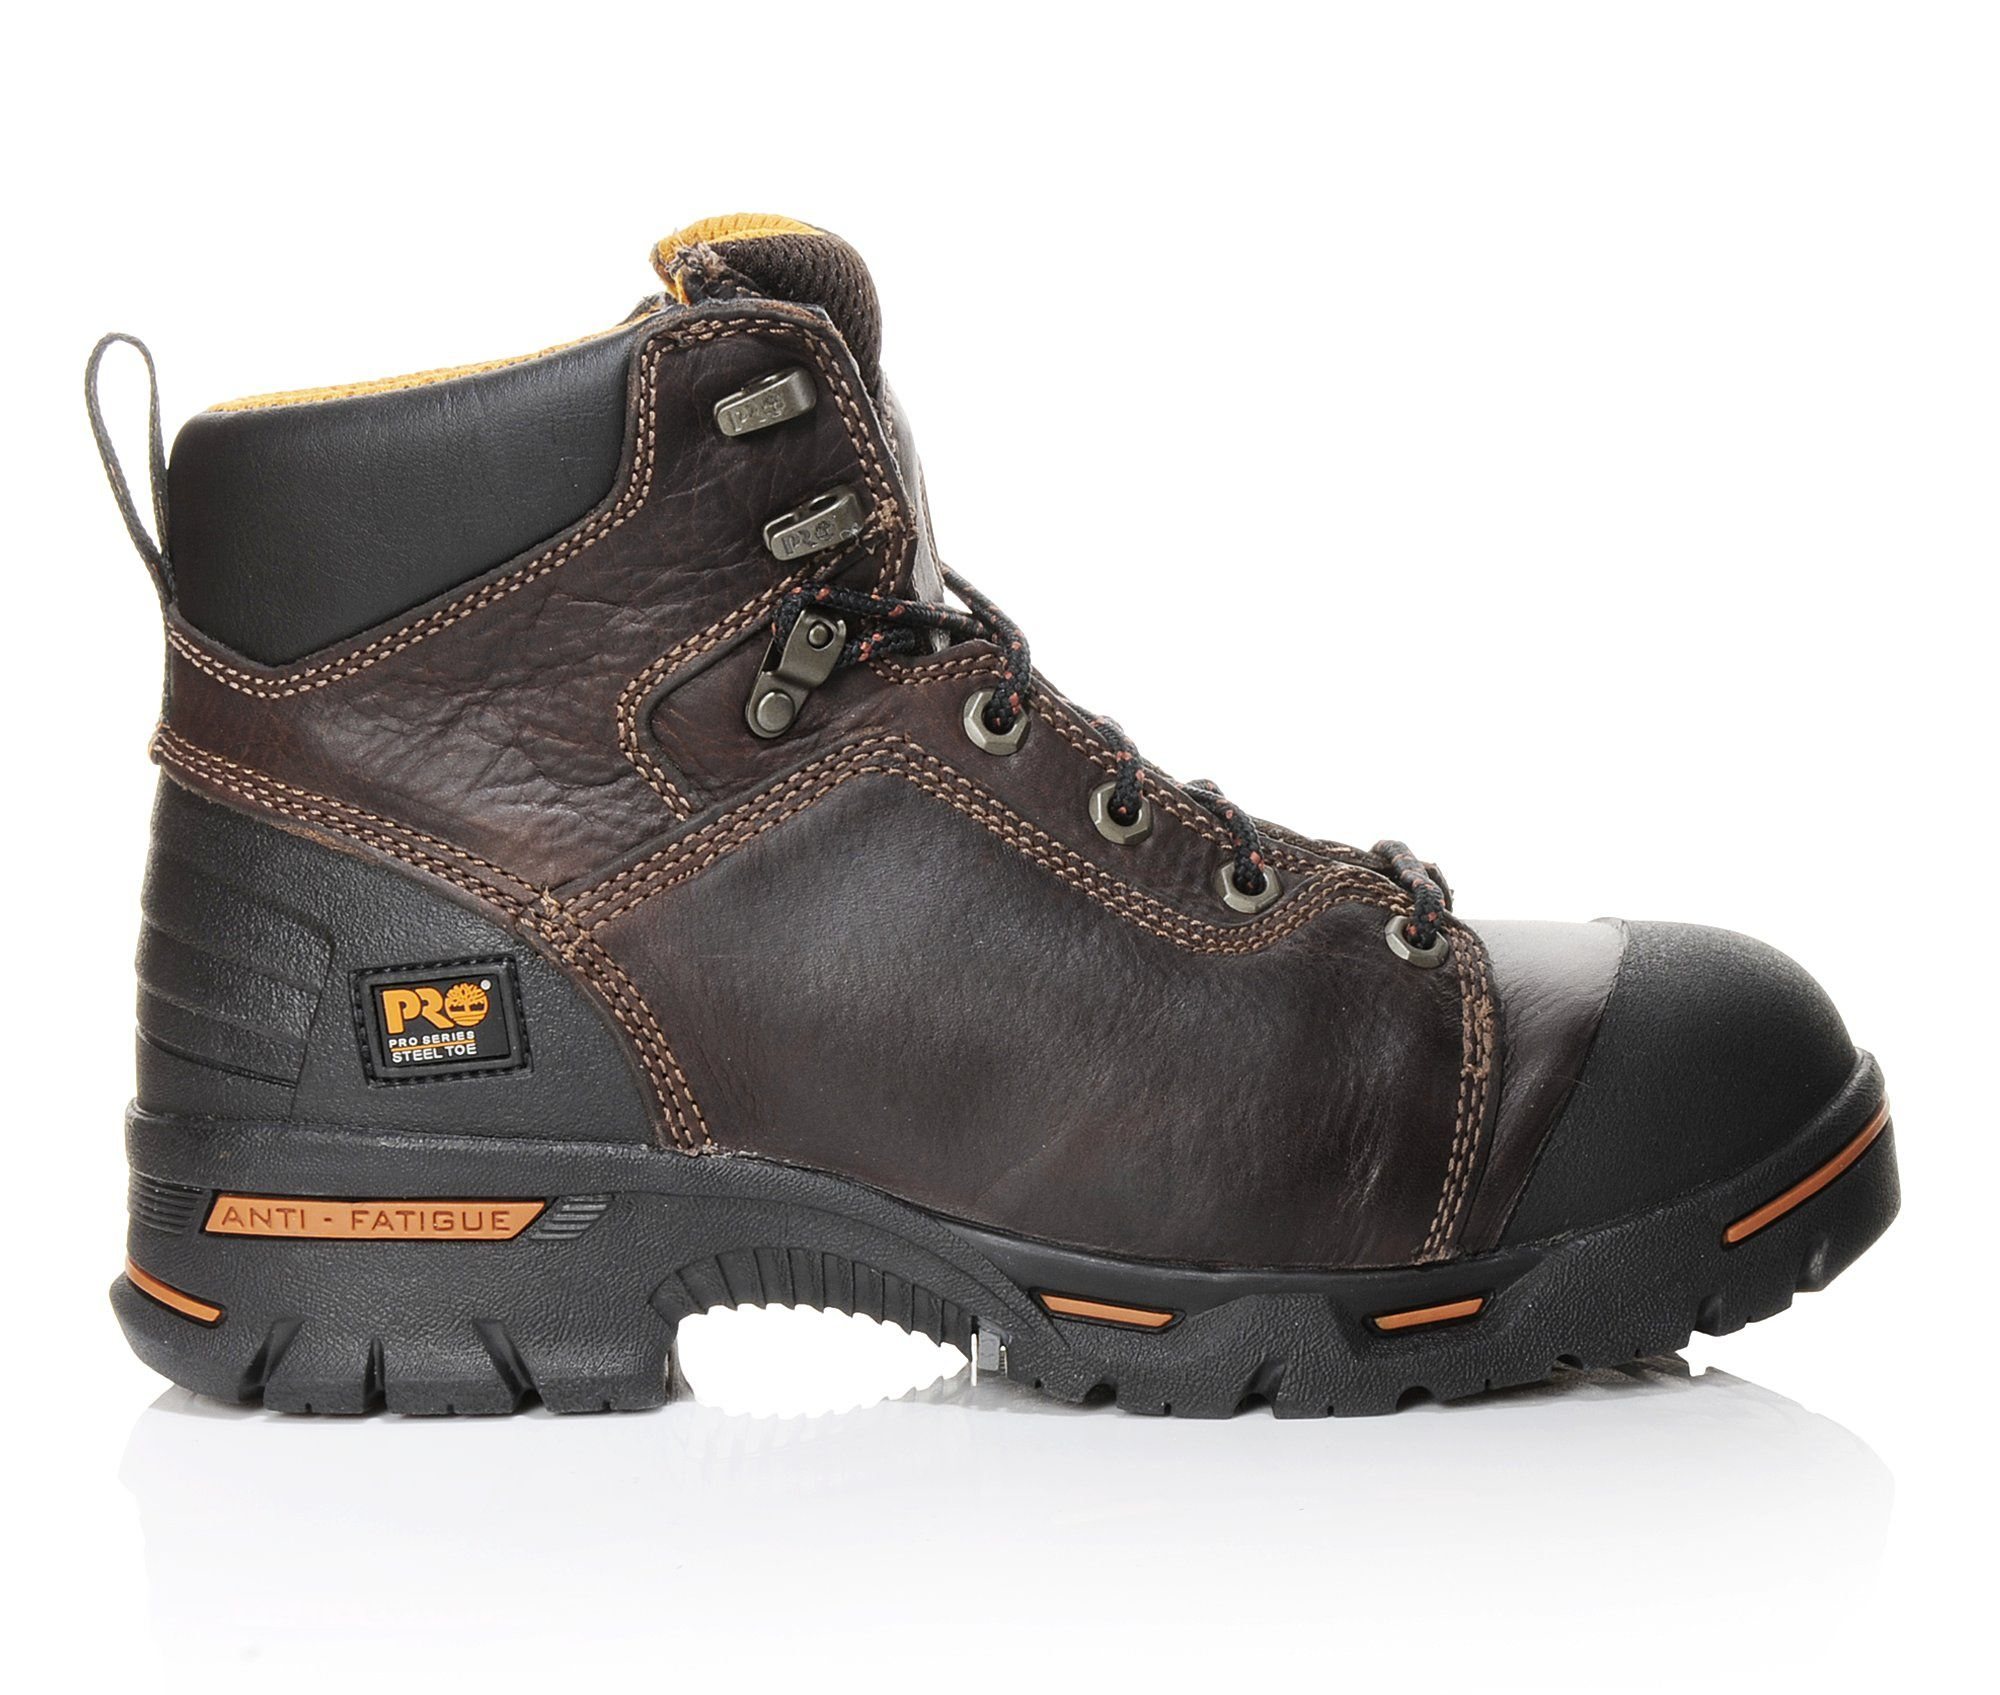 Timberland Pro Endurance PR 6 Inch Steel Toe 52562 Men's Boots (Brown Leather)